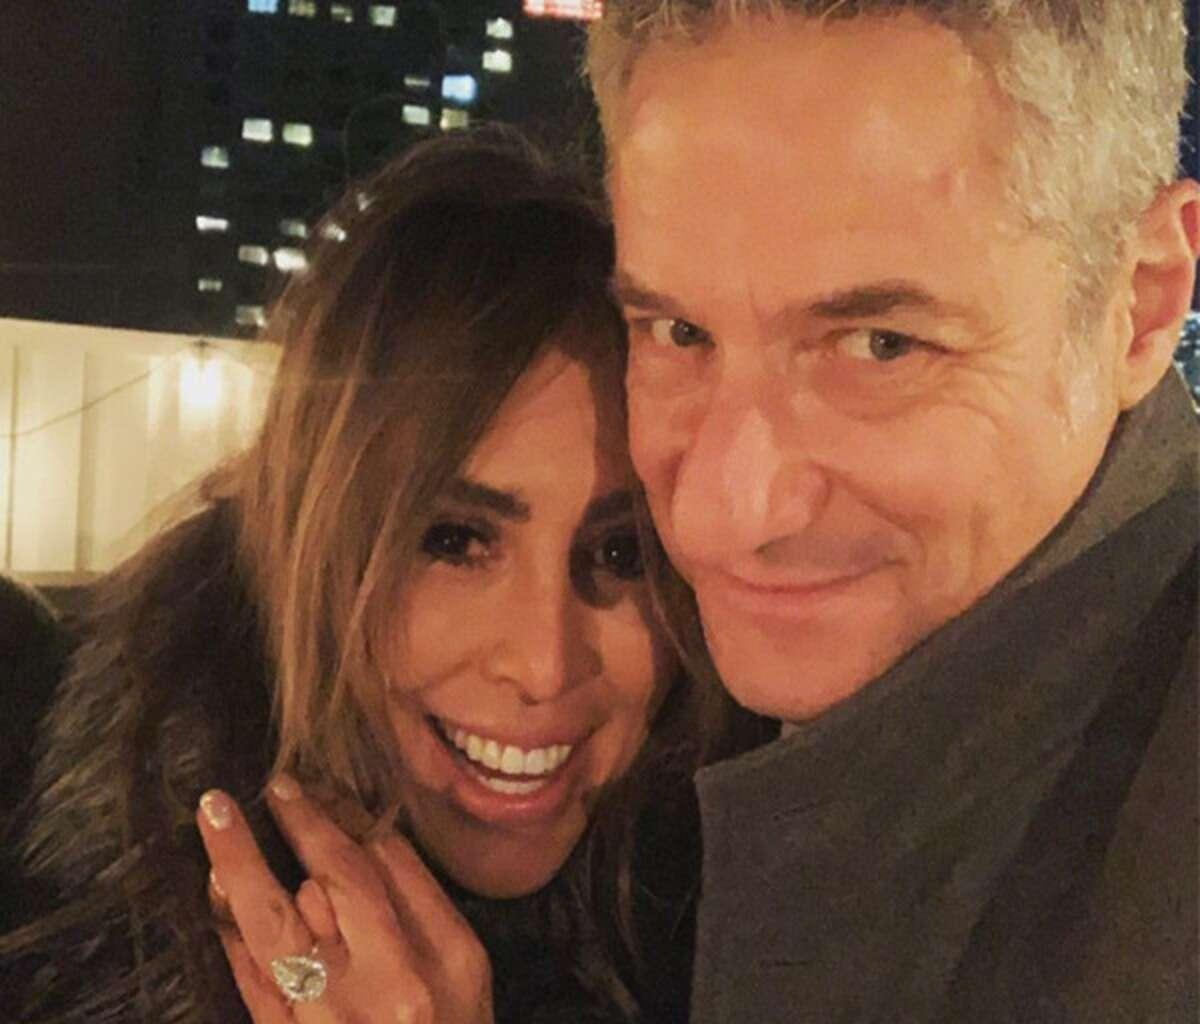 Kelly Dodd And Her Boyfriend Of 3 Months Are Engaged - Check Out The Massive Ring!